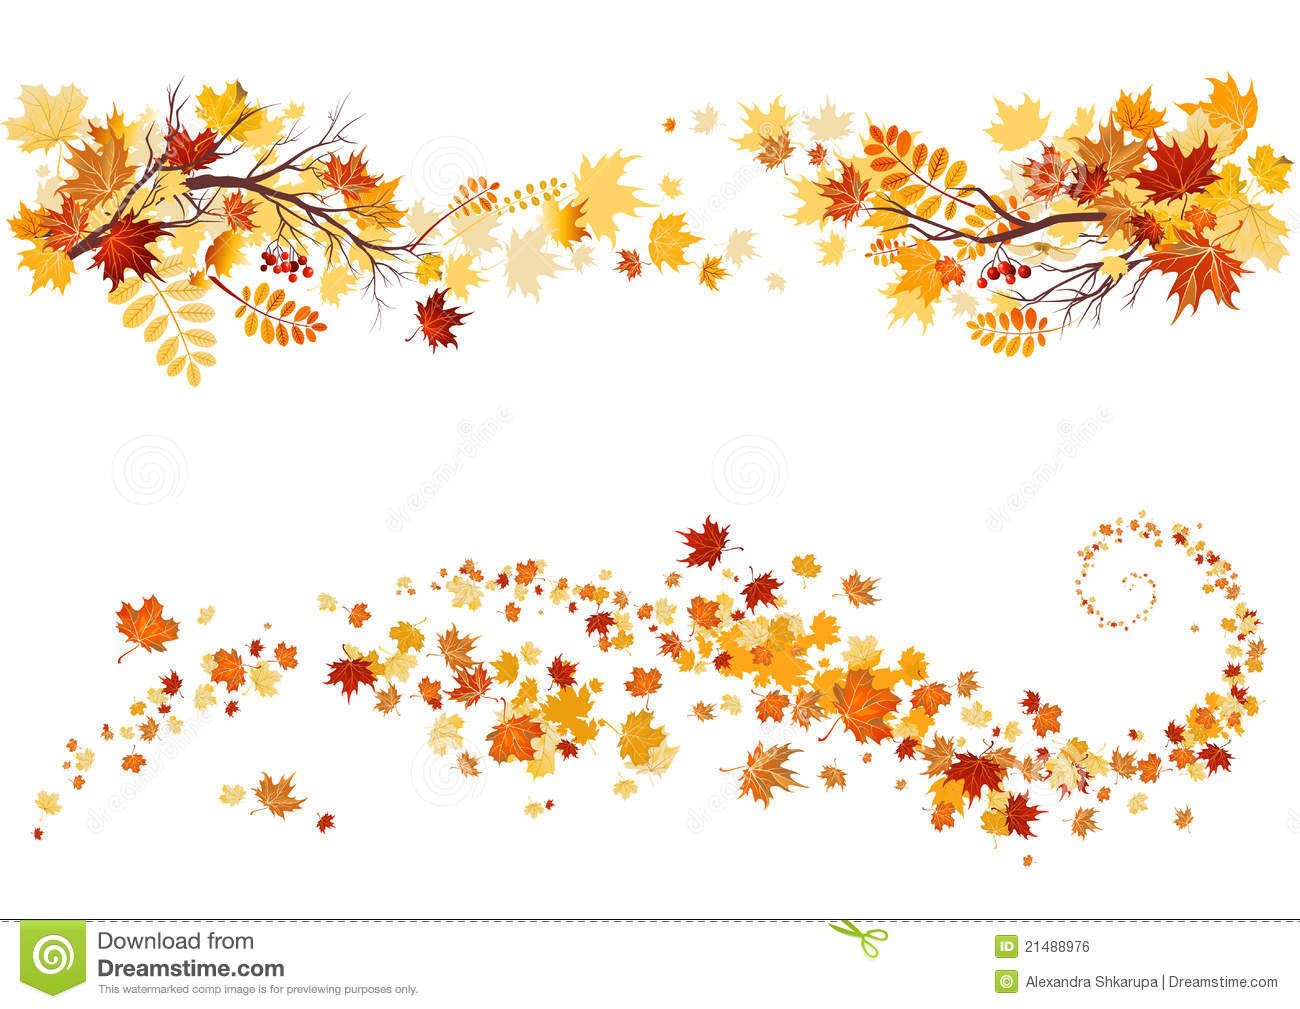 Autumn Leaves Border Download From Over 64 Million High Quality Stock Photos Images Vectors Sign Up For Free Today Fall Clip Art Leaf Border Autumn Leaves